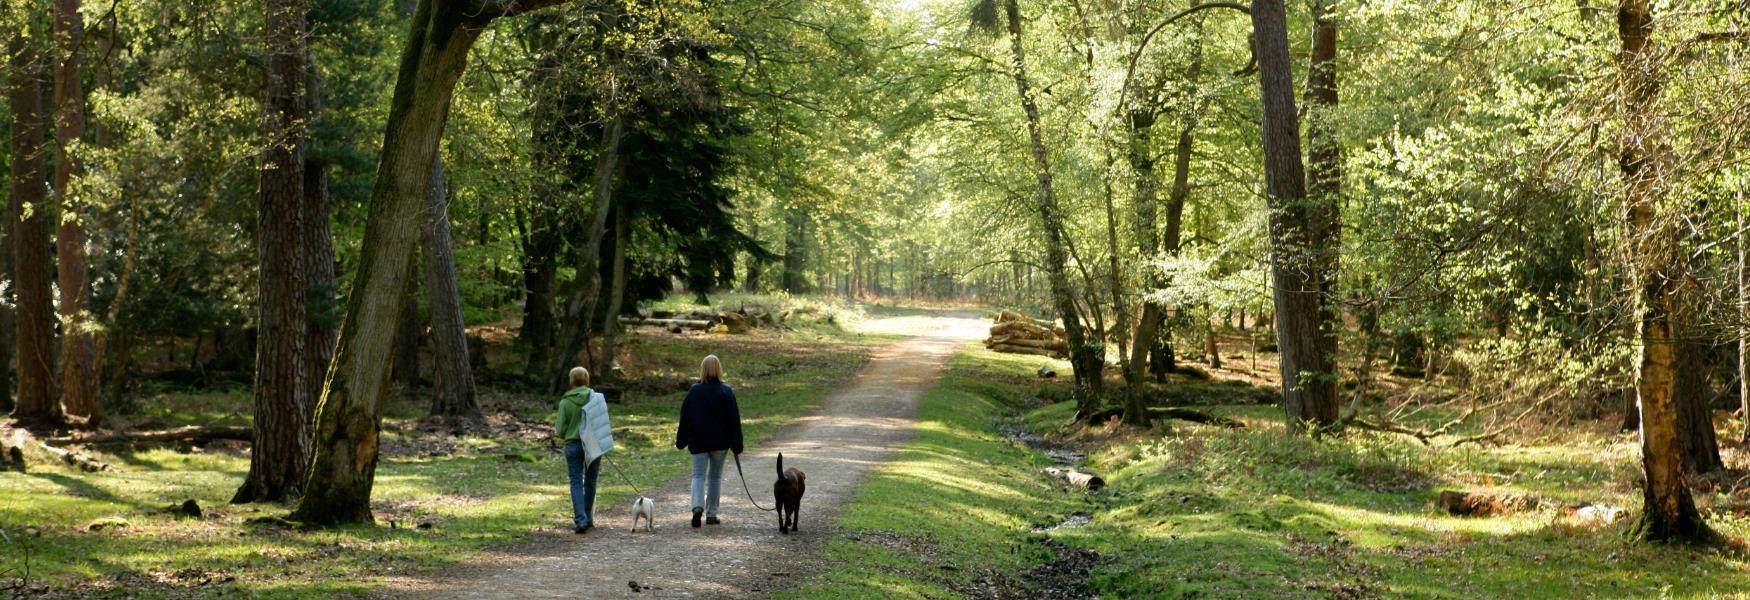 walking in dogs on a path in the new forest